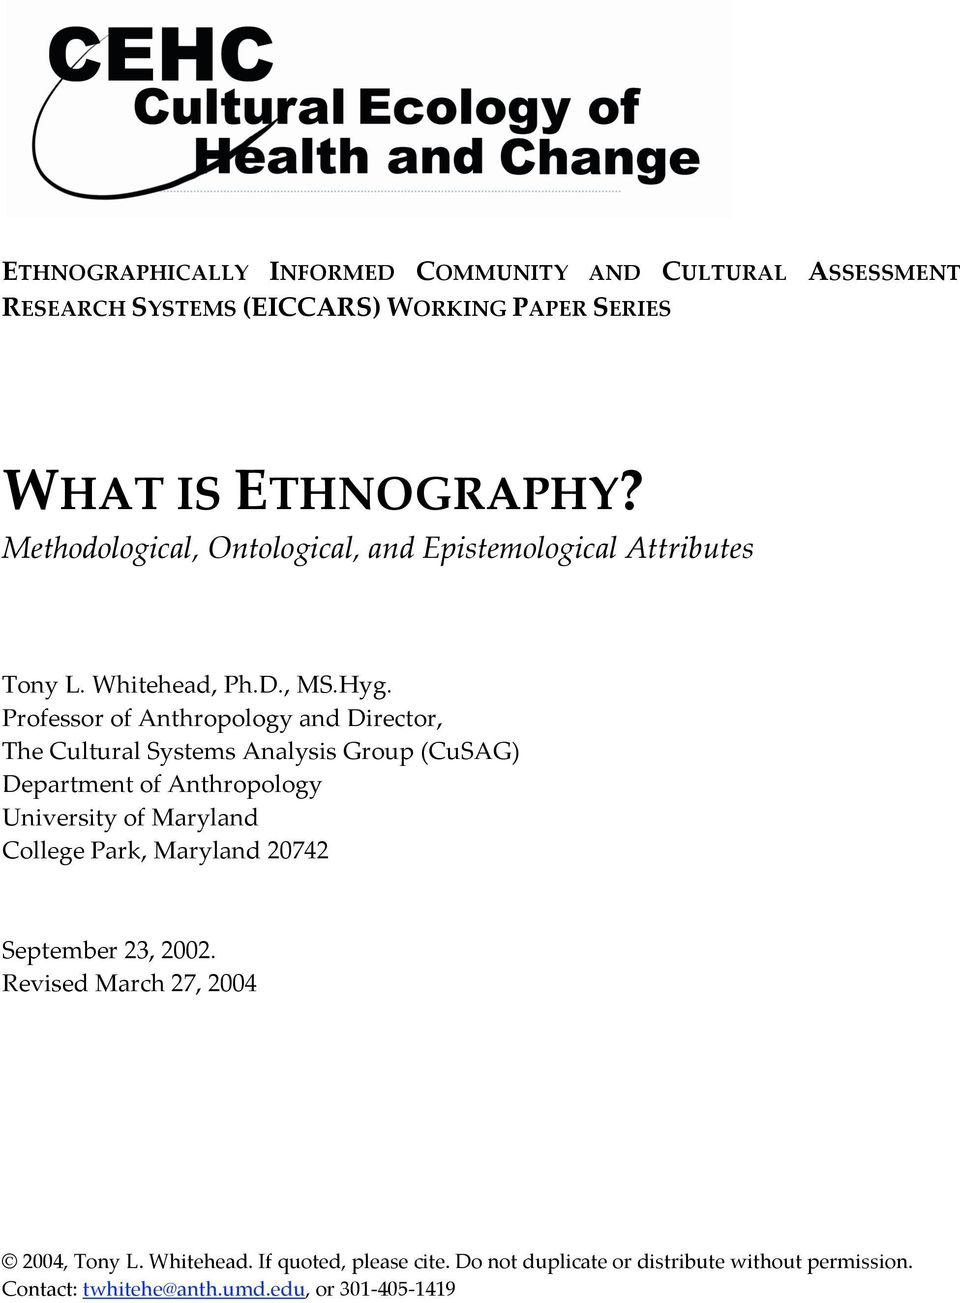 sample ethnographic research paper